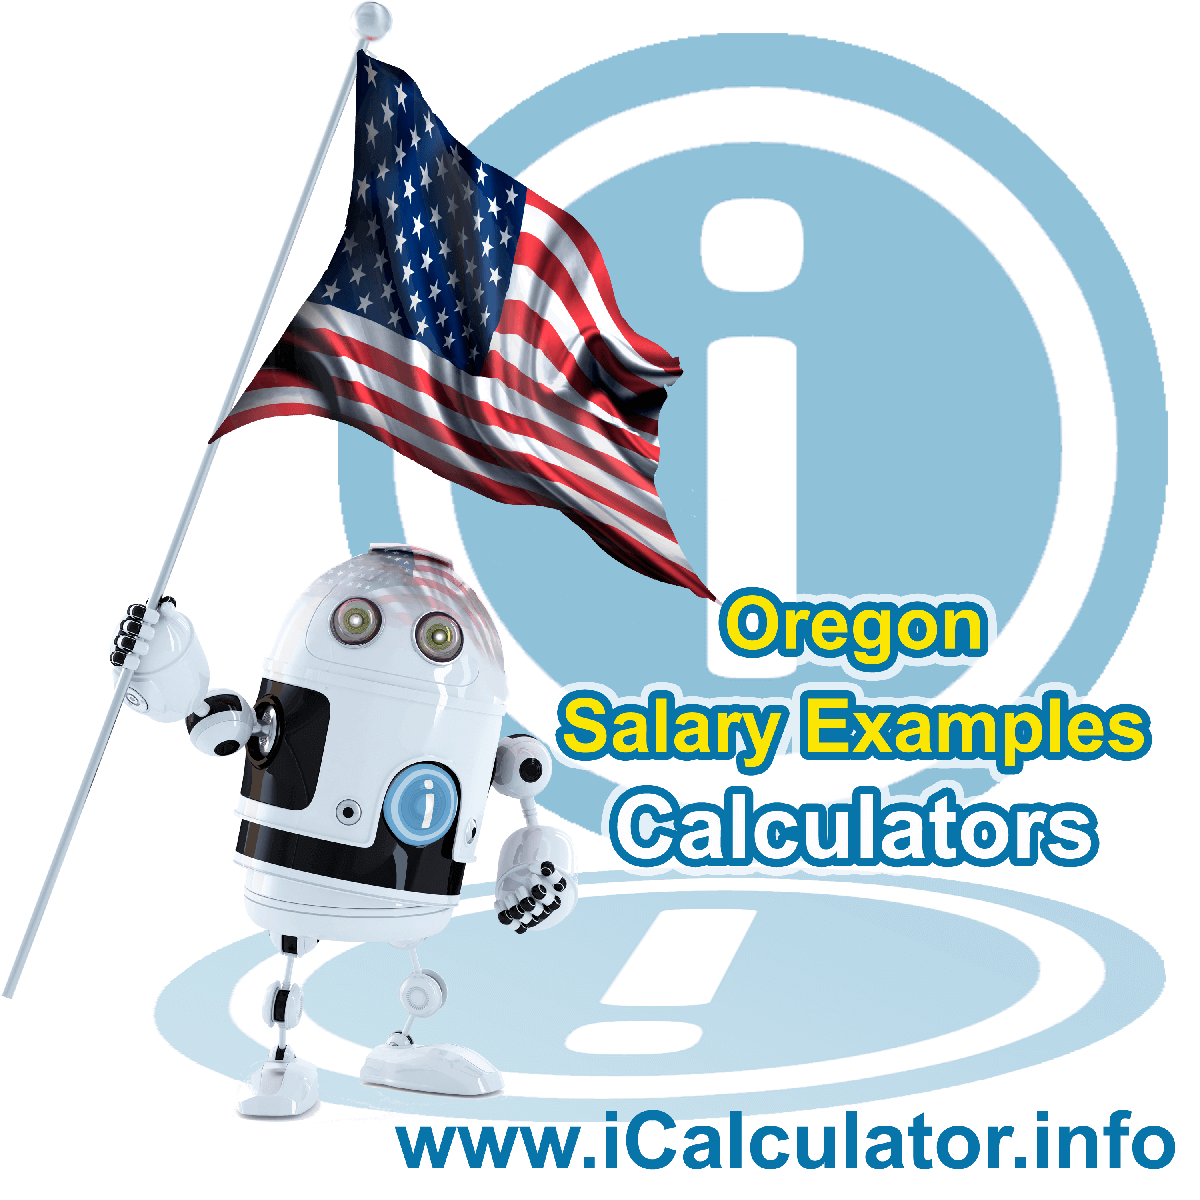 Oregon Salary Example for $10.00 in 2020 | iCalculator | $10.00 salary example for employee and employer paying Oregon State tincome taxes. Detailed salary after tax calculation including Oregon State Tax, Federal State Tax, Medicare Deductions, Social Security, Capital Gains and other income tax and salary deductions complete with supporting Oregon state tax tables